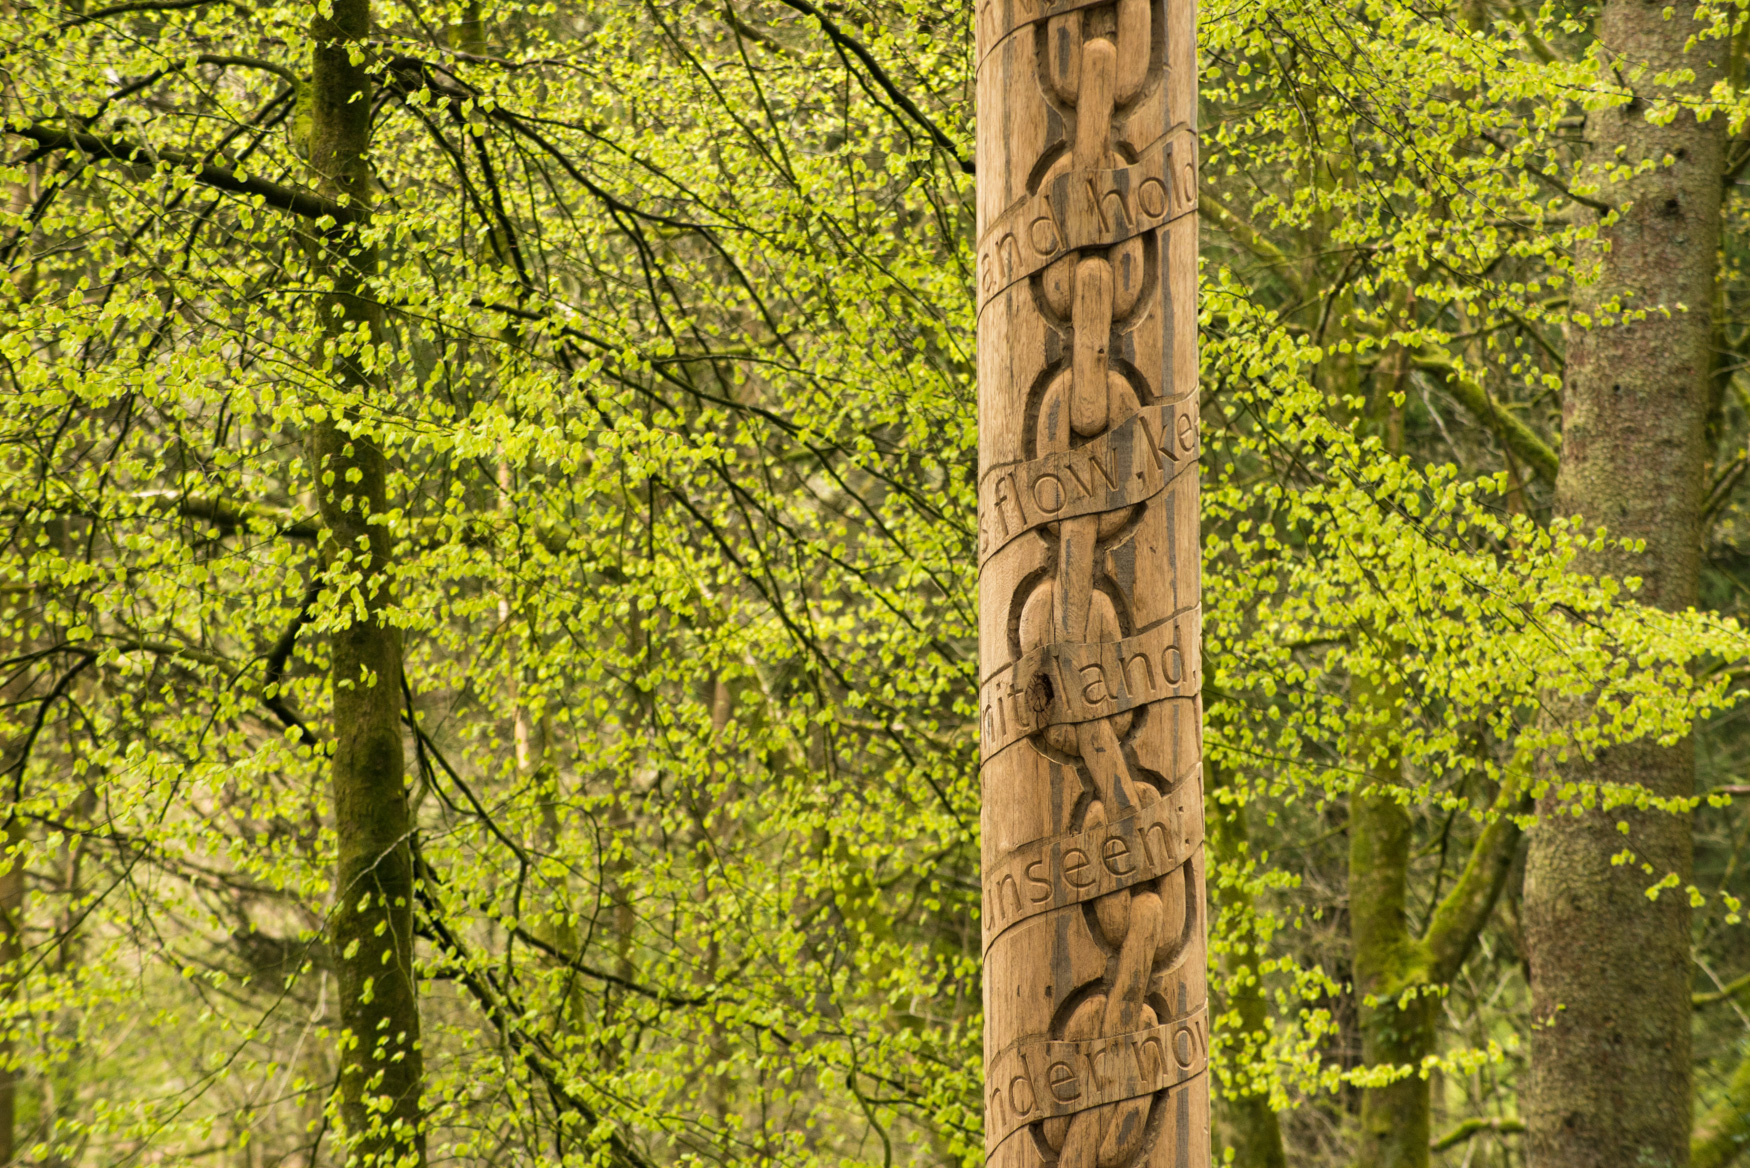 Grizedale Tree Pole